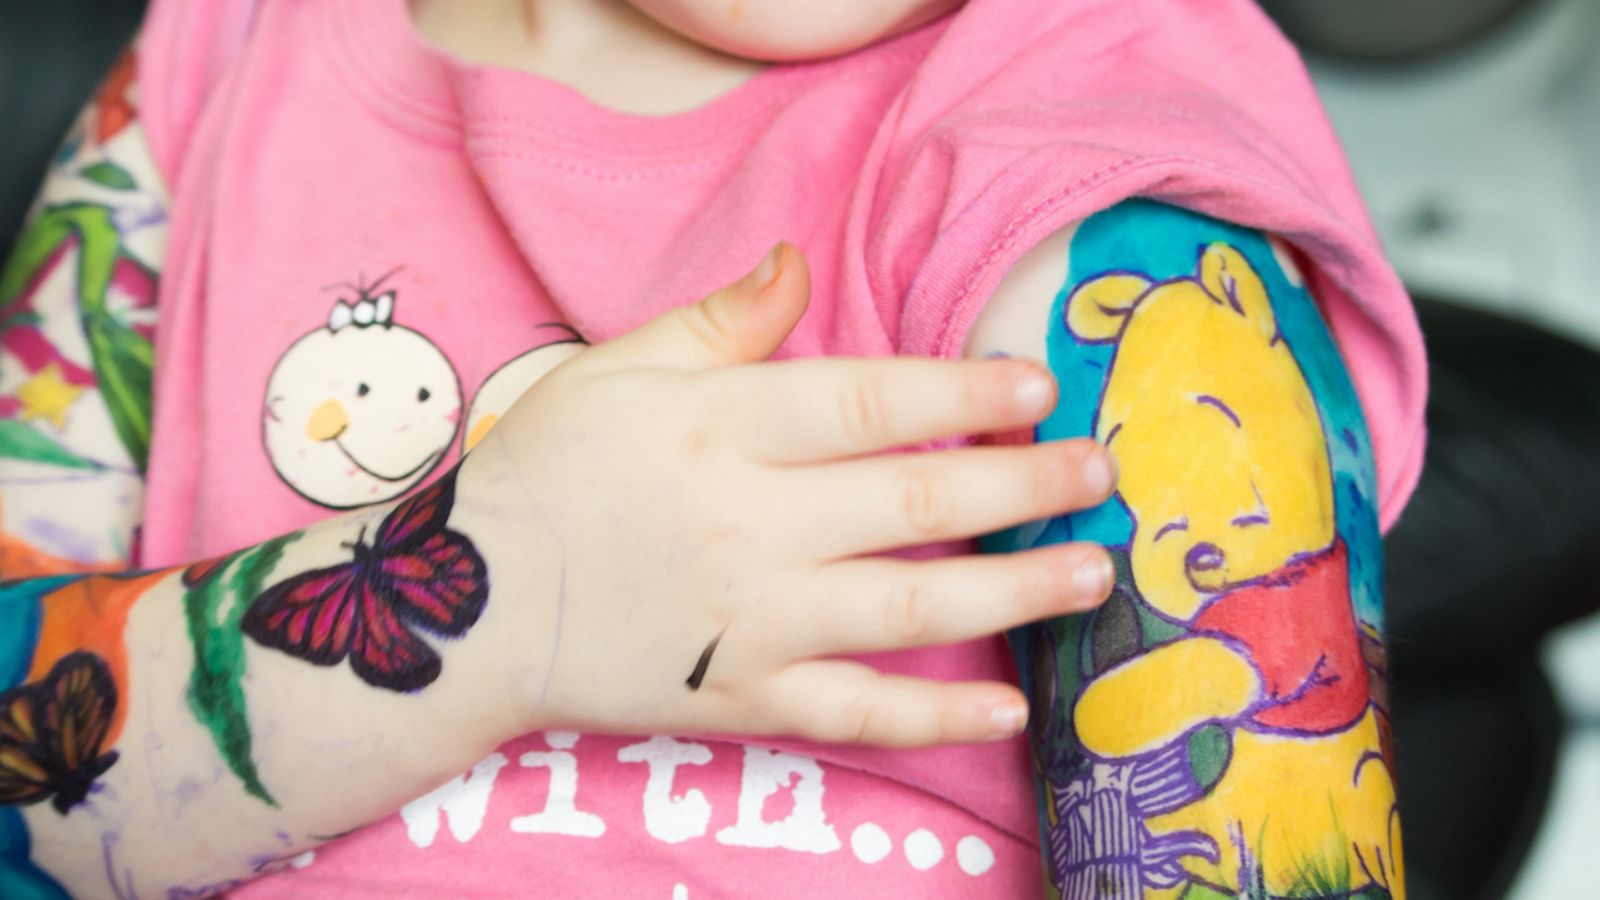 66a8f5d780e9a 3-year-old fighting cancer gets magical Disney 'tattoos' to be just like  dad - ABC News